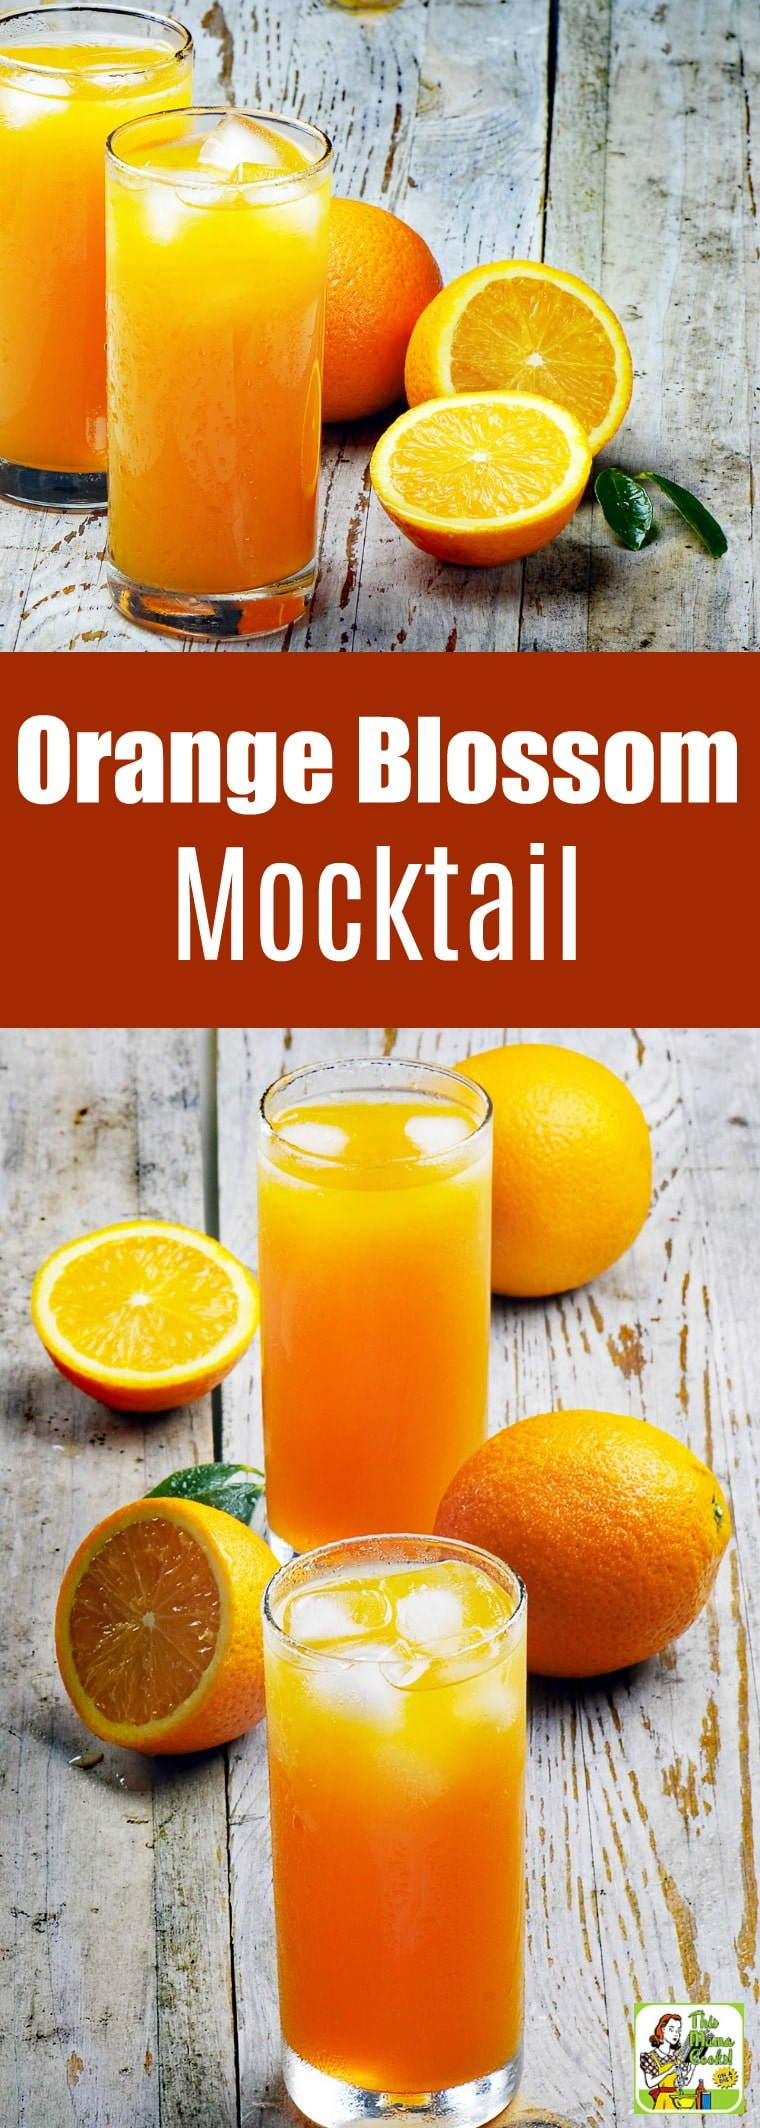 Orange Blossom Mocktail Recipe